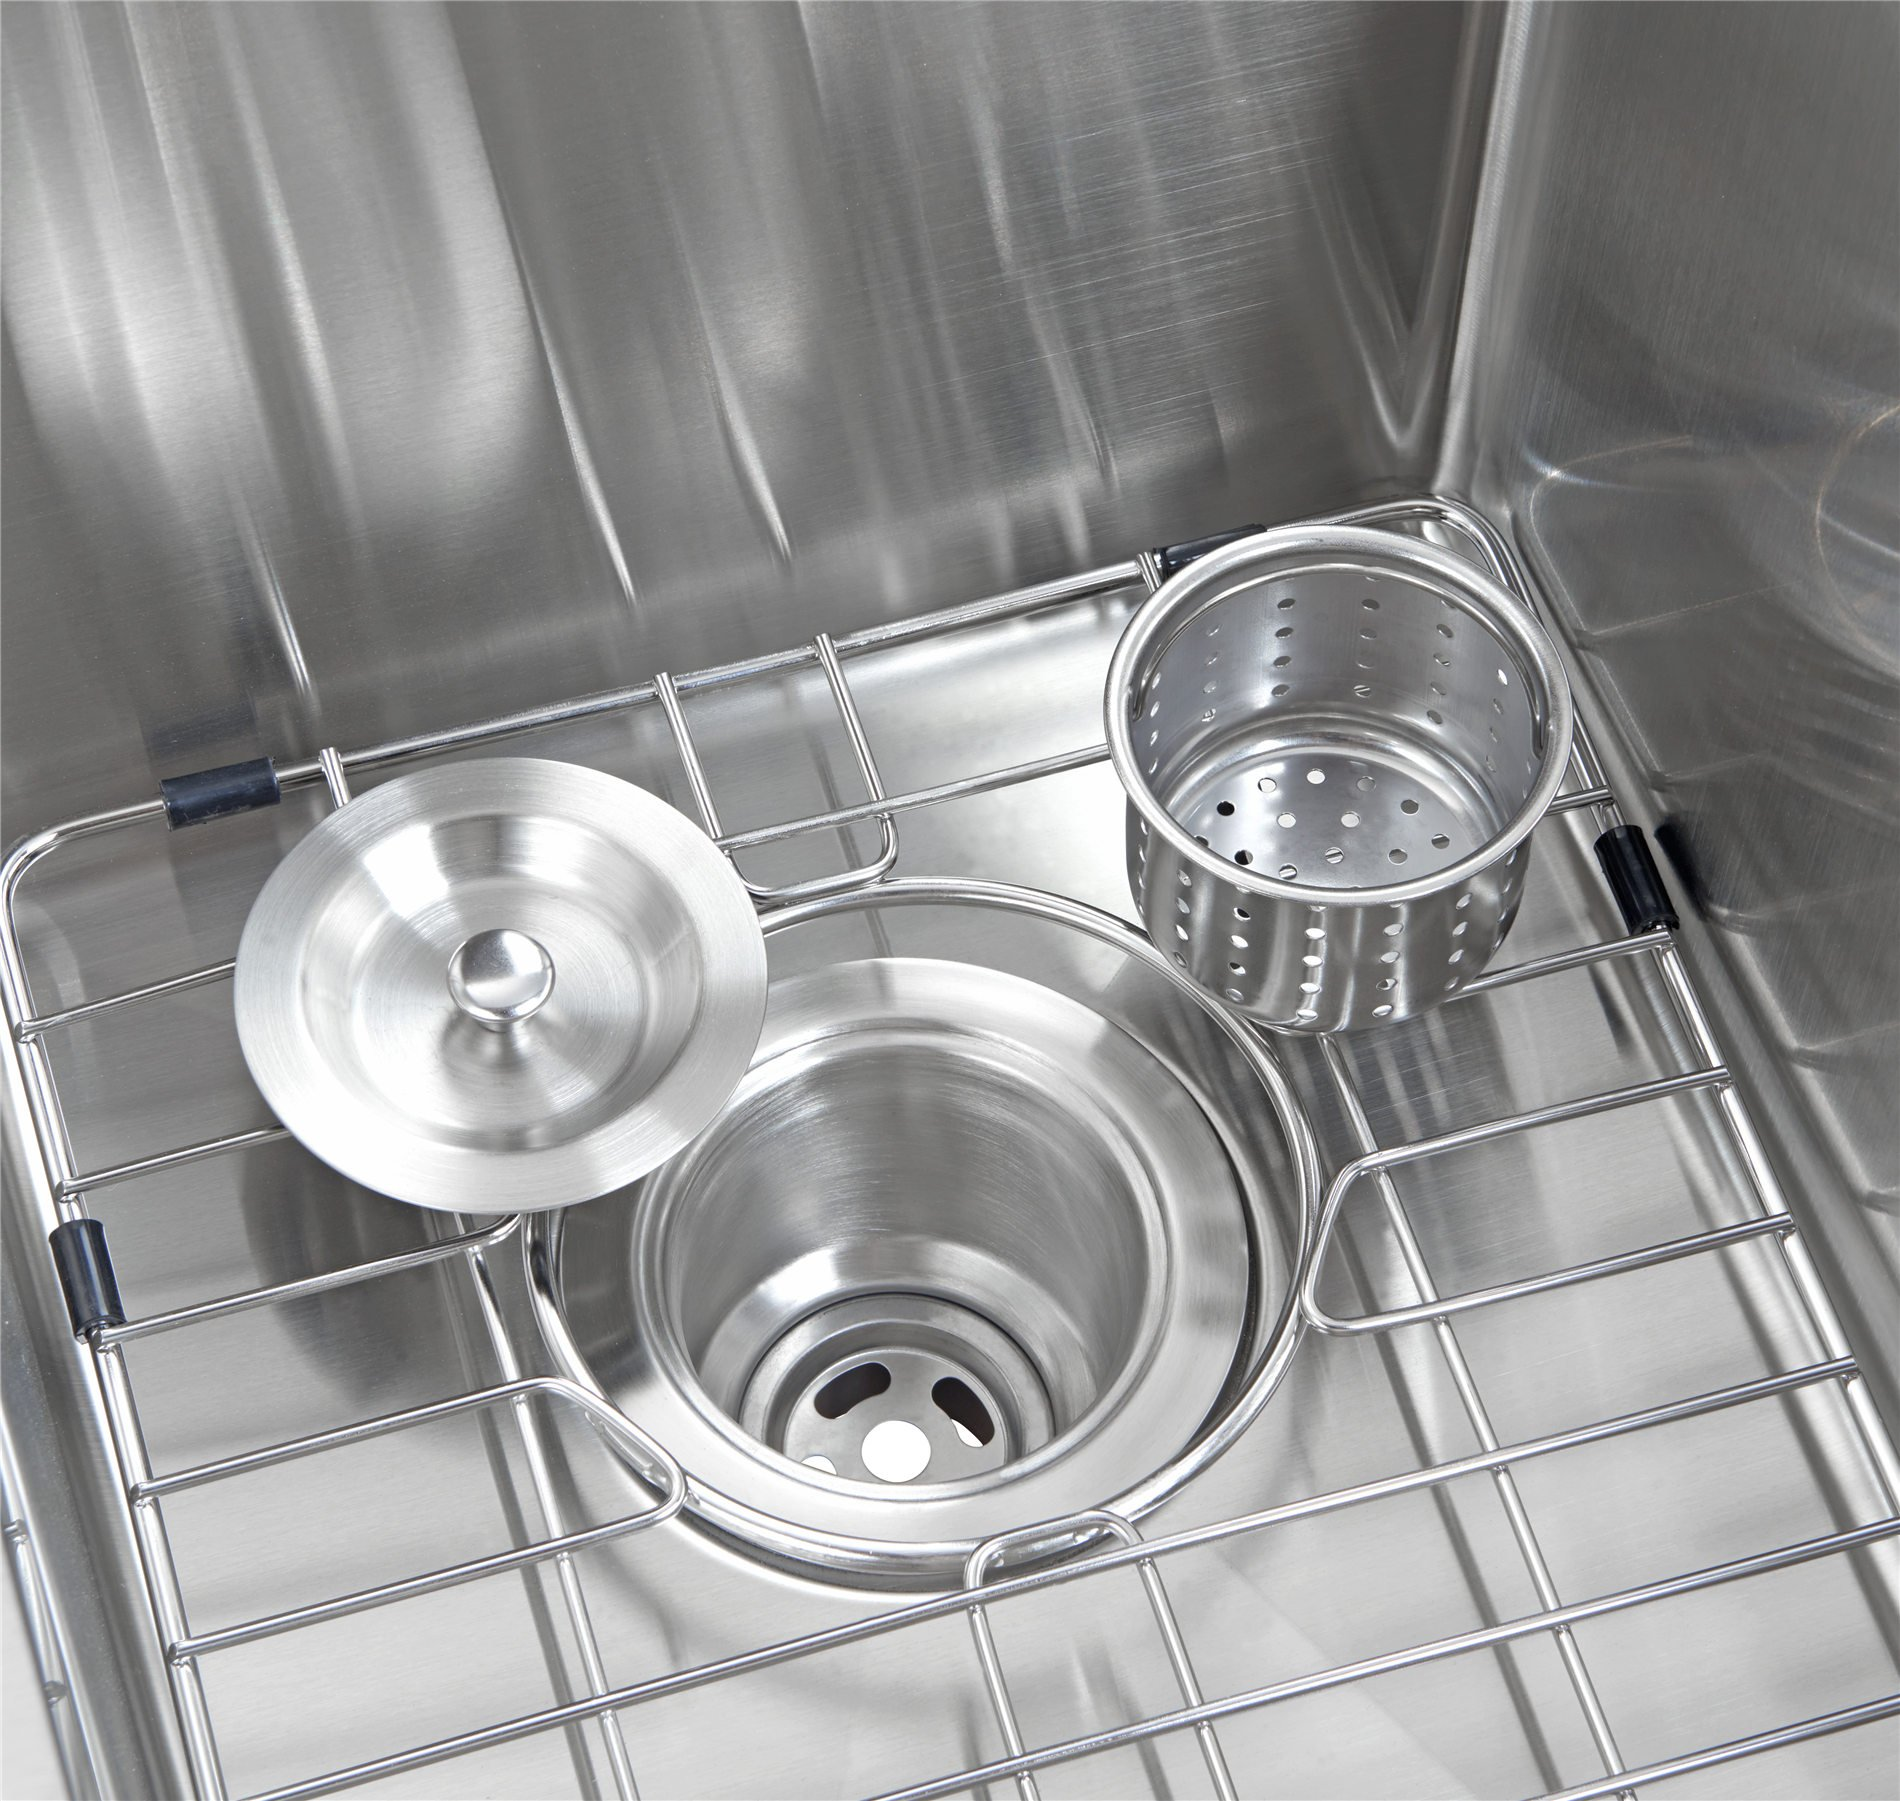 33x21 Inch Farmhouse Apron 60/40 Deep Double Bowl 16 Gauge Stainless Steel Luxury Kitchen Sink SuperSuper by SuperSuper (Image #5)